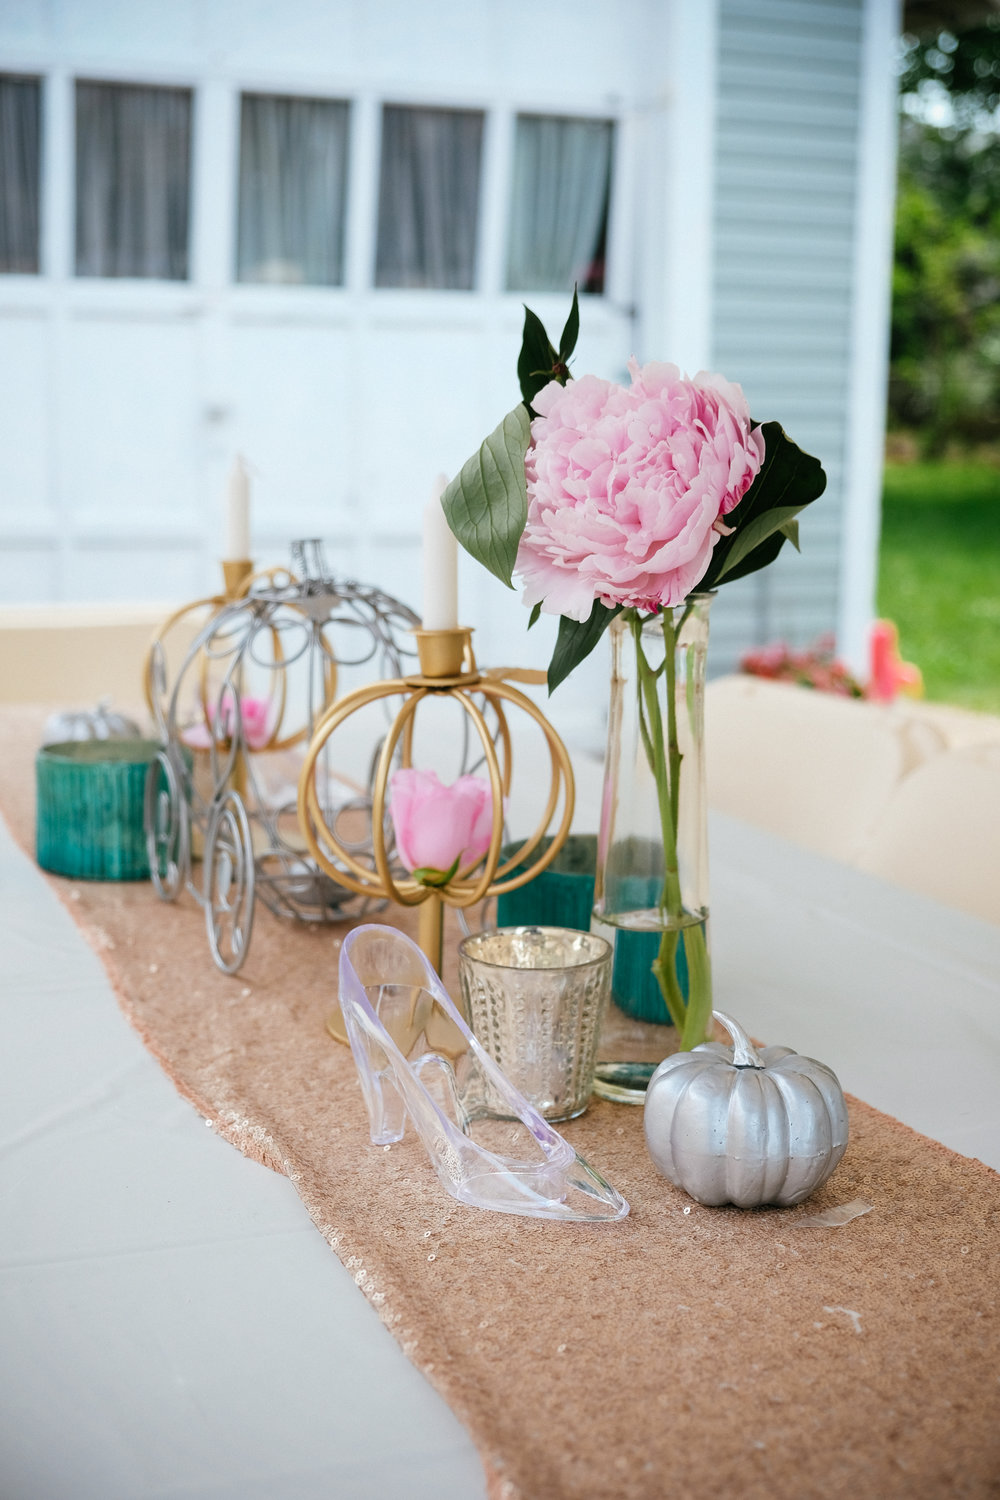 If you're thinking of throwing a Disney themed wedding or engagement party, look no further! There are tons of ideas, as well as tips to make your party unique and cohesive. Click to see the full post, with lots of other photos!